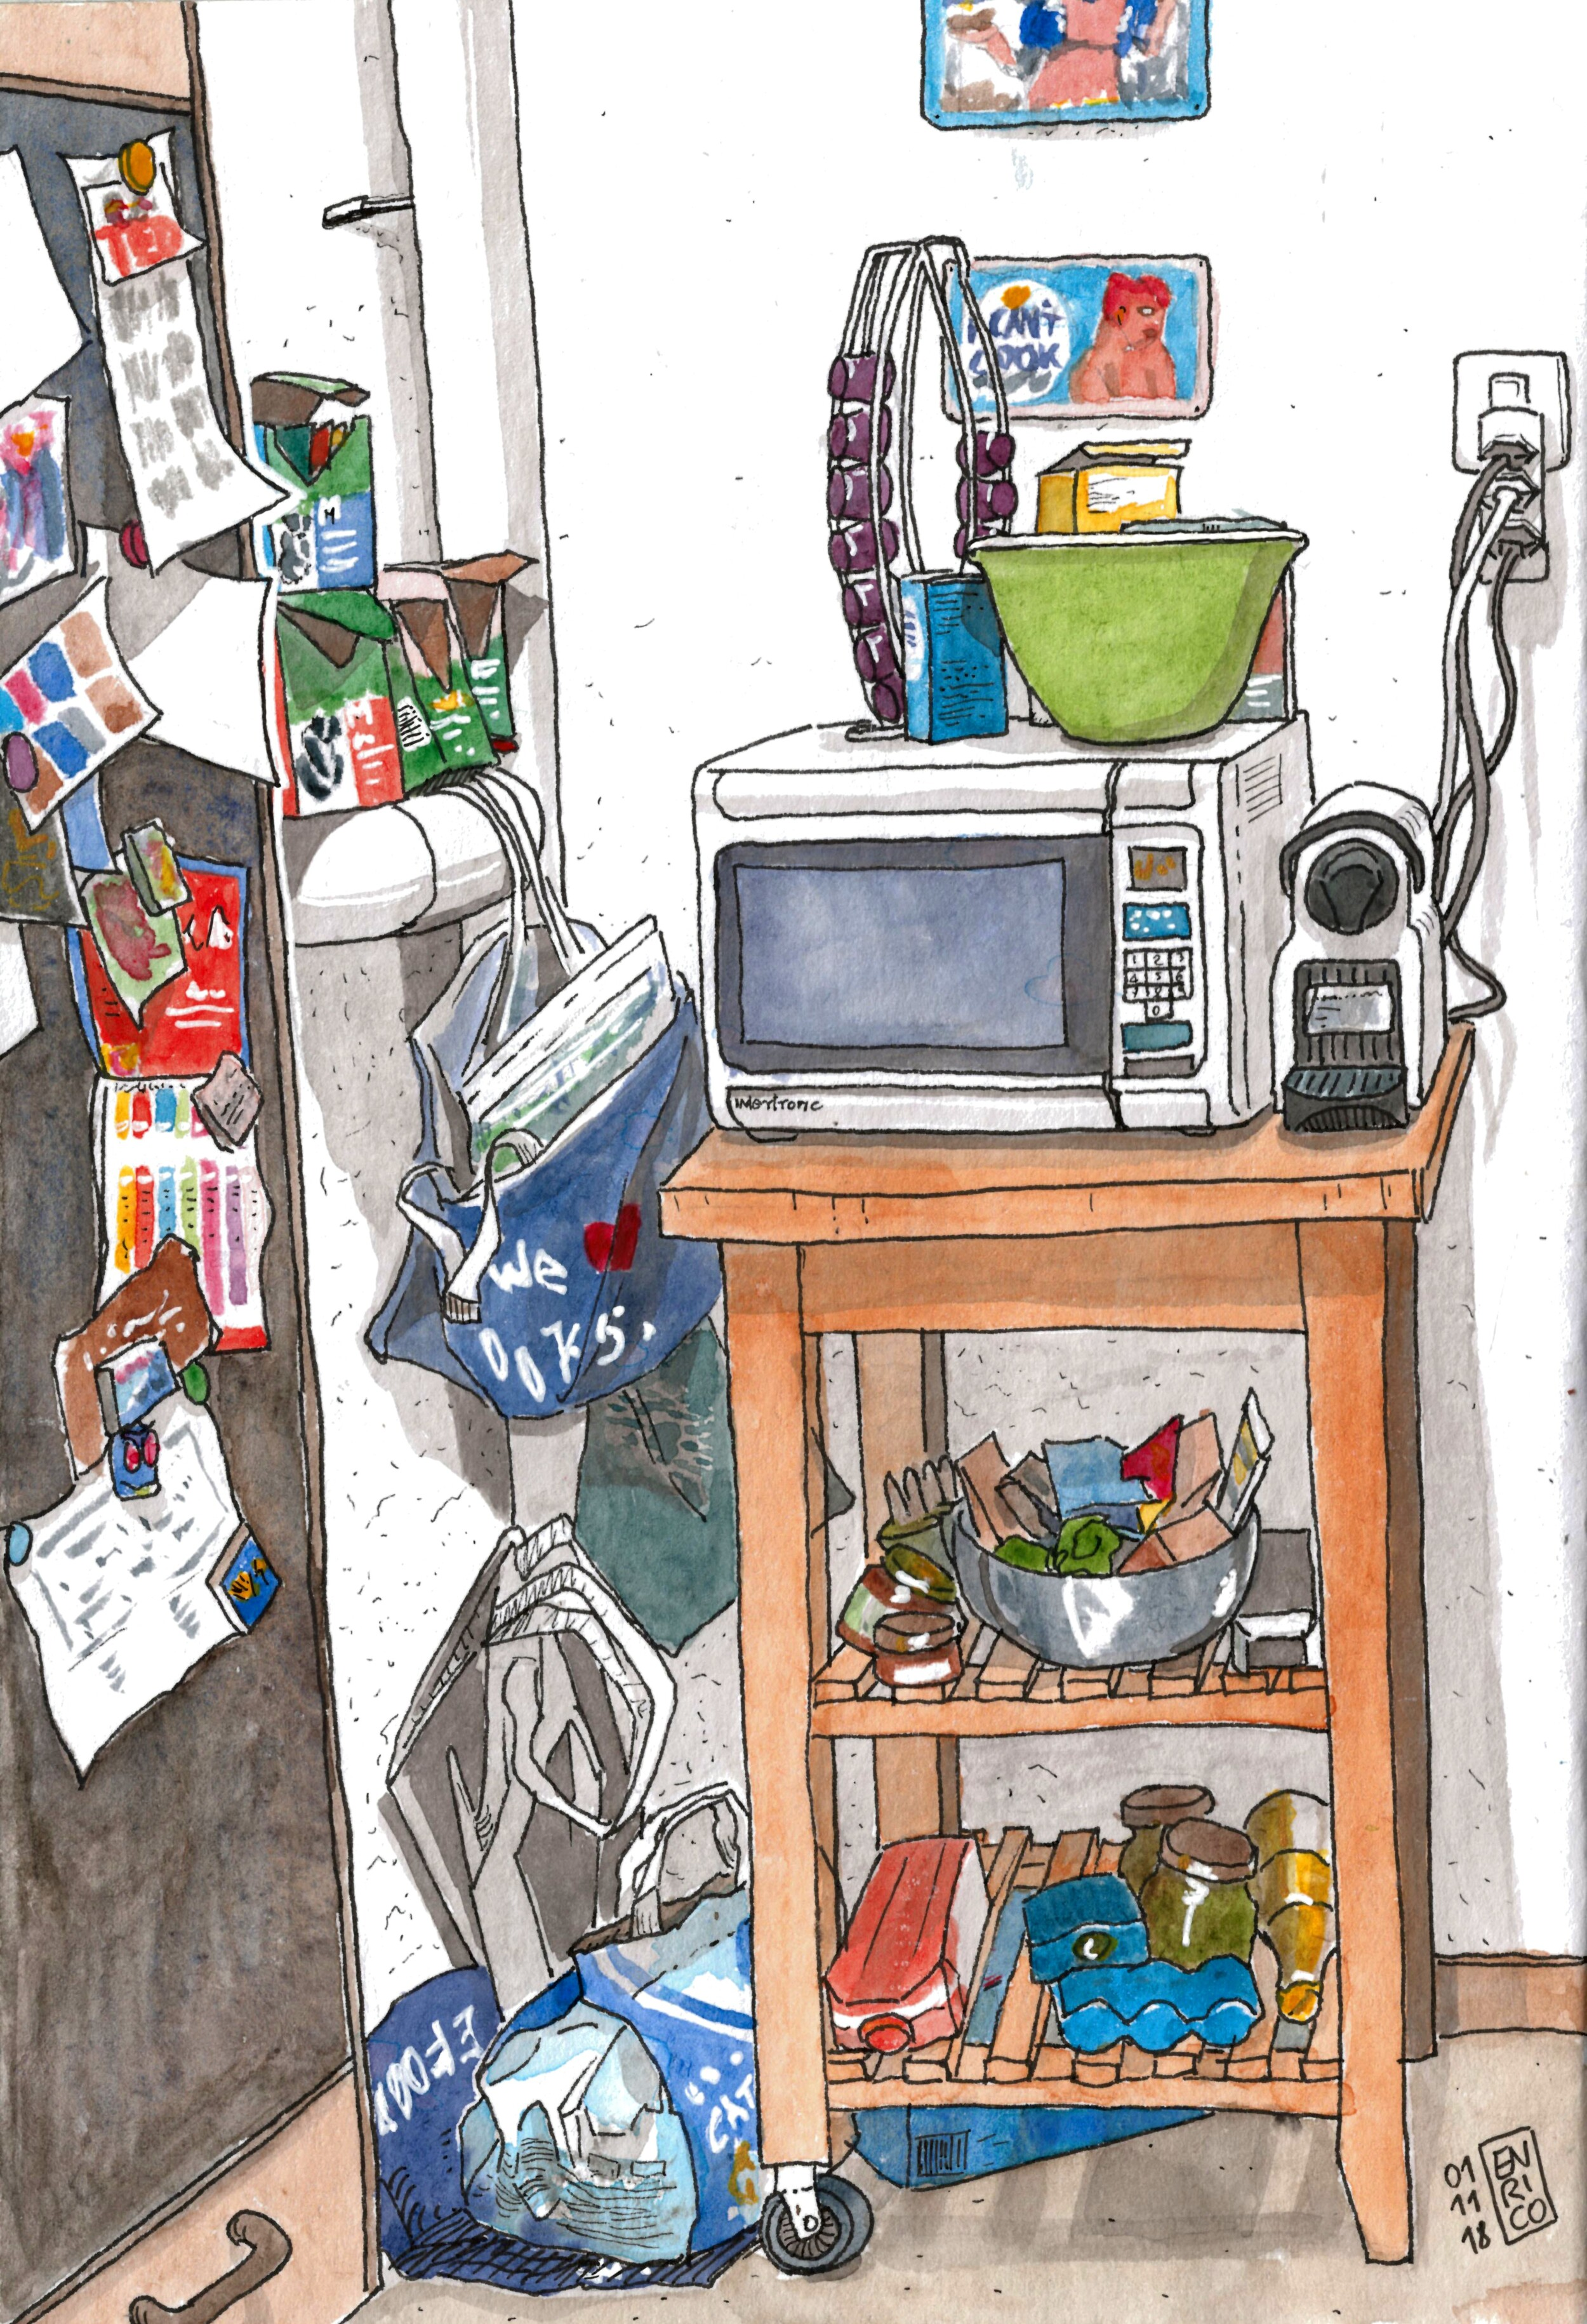 Kitchen corner with microwave and cat food. The cat decided to come and sit on top of the microwave looking at me, but it was to late to put it in the sketch as I already started inking.